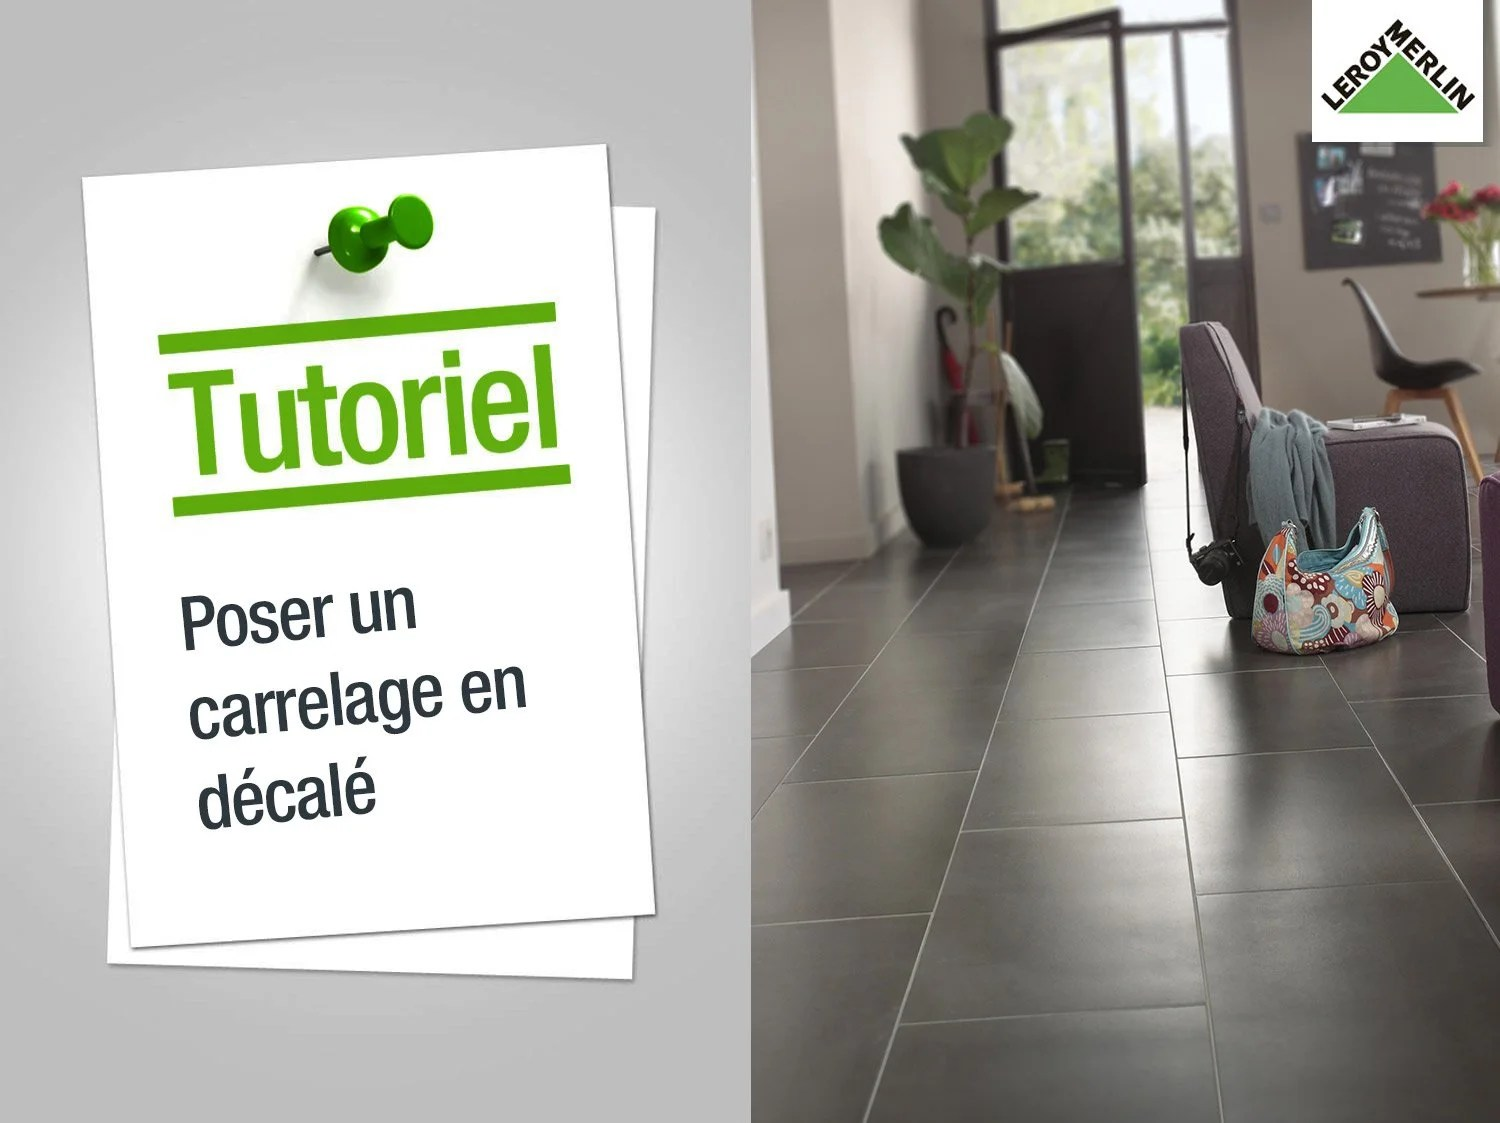 Pose Carrelage Exterieur Video Comment Poser Un Carrelage En Décalé Leroy Merlin